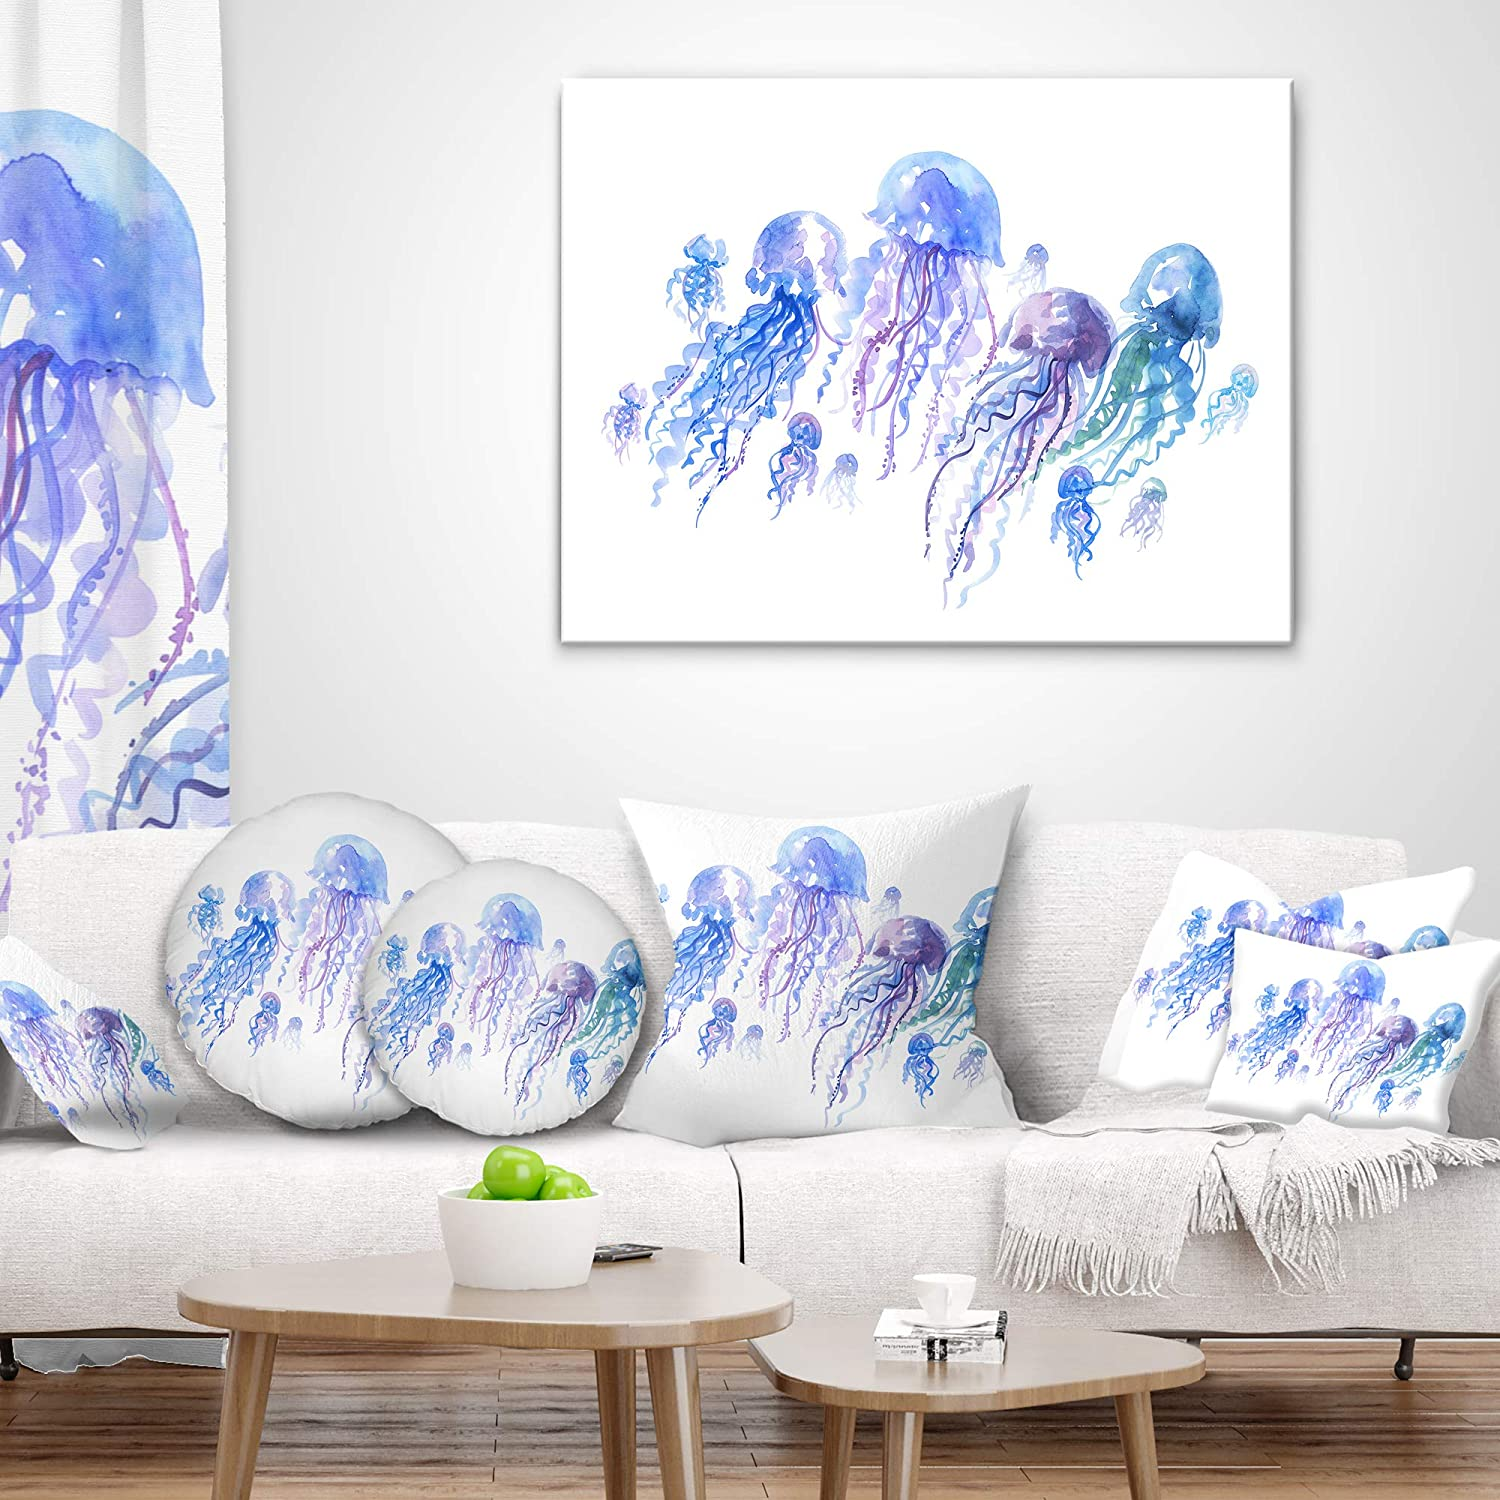 Sofa Throw Pillow 26 x 26 Designart CU13304-26-26 Blue Purple Jellyfish Group Abstract Cushion Cover for Living Room